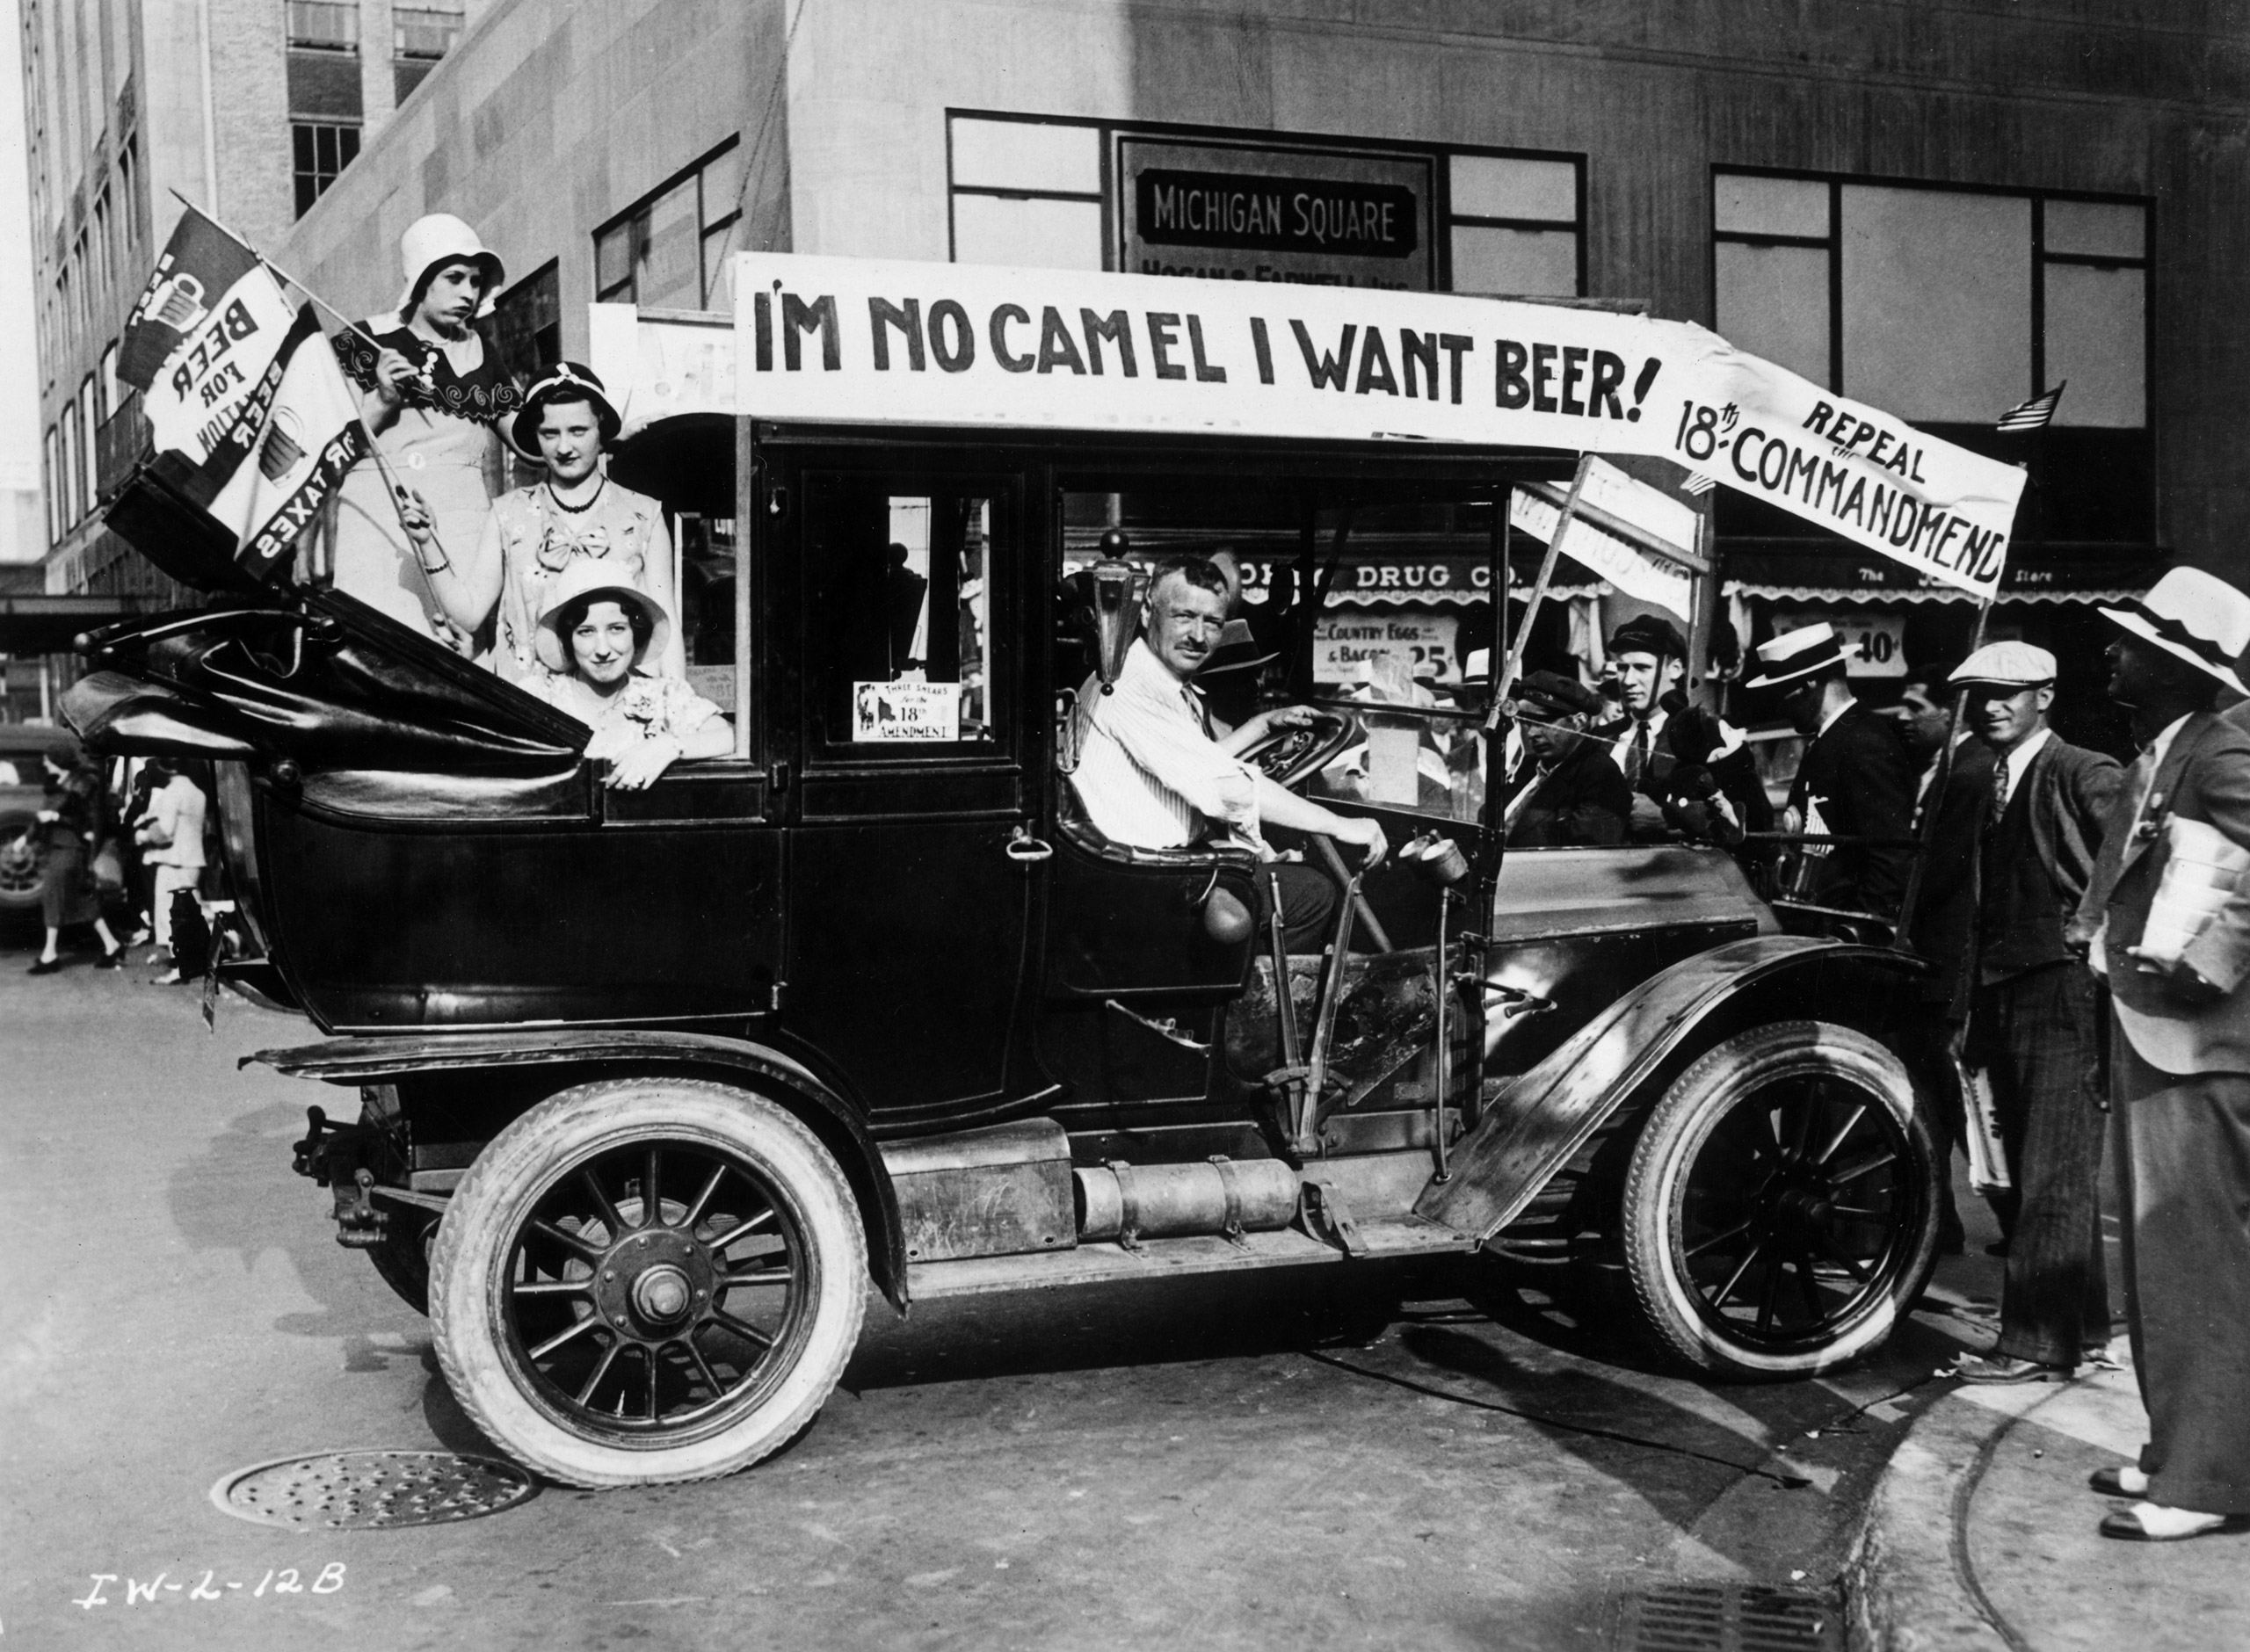 Prohibition protesters parade in a car emblazoned with signs and flags calling for the repeal of the 18th Amendment.